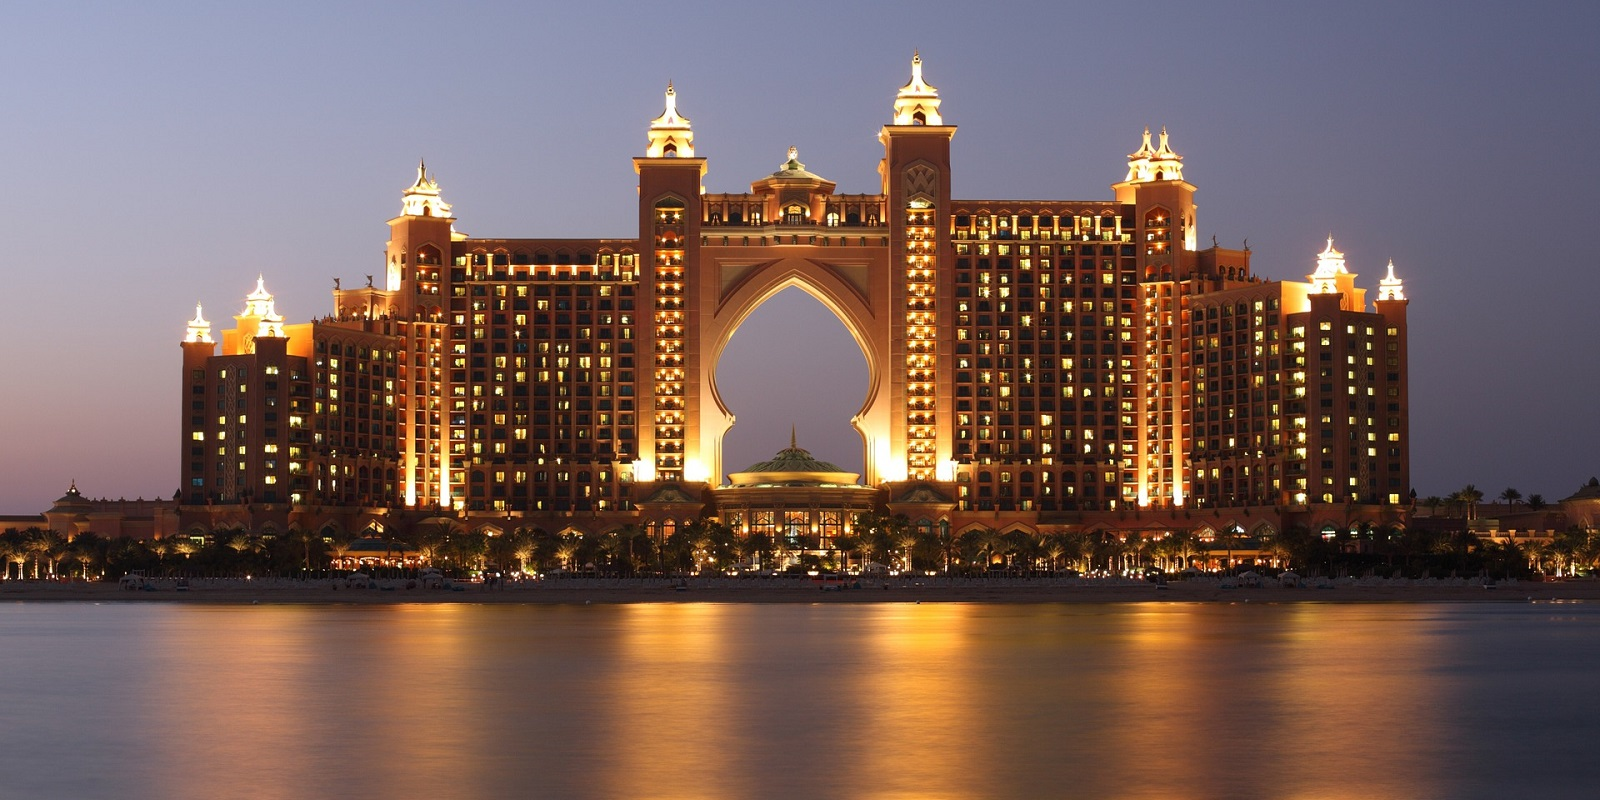 Hotel Atlantis The Palm a Dubai